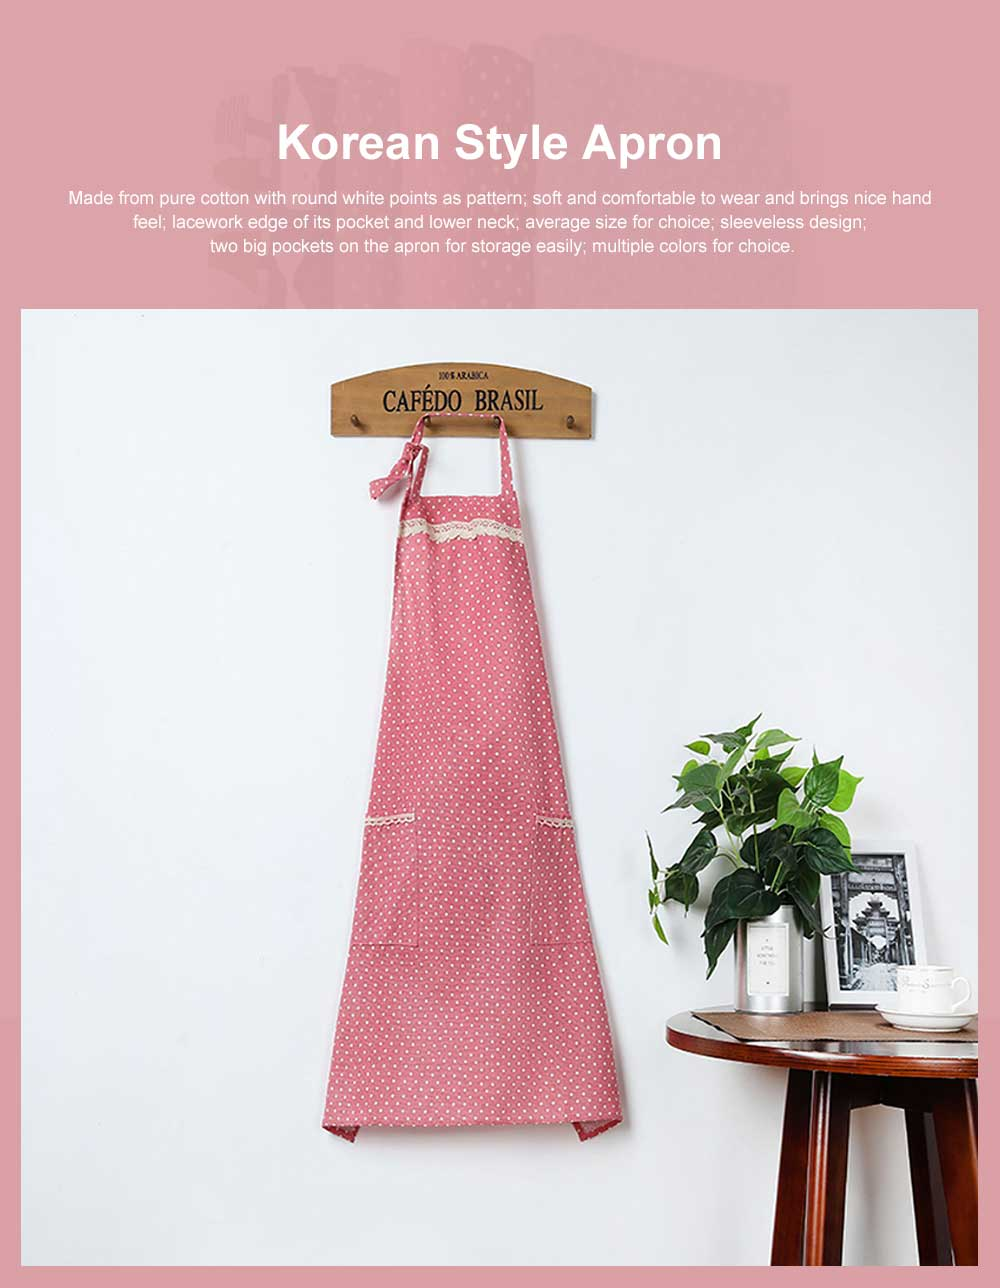 Lacework Edge Five Color Wave Point Apron Household Kitchen Used Pinafore Fashionable Kitchen Accessory 0